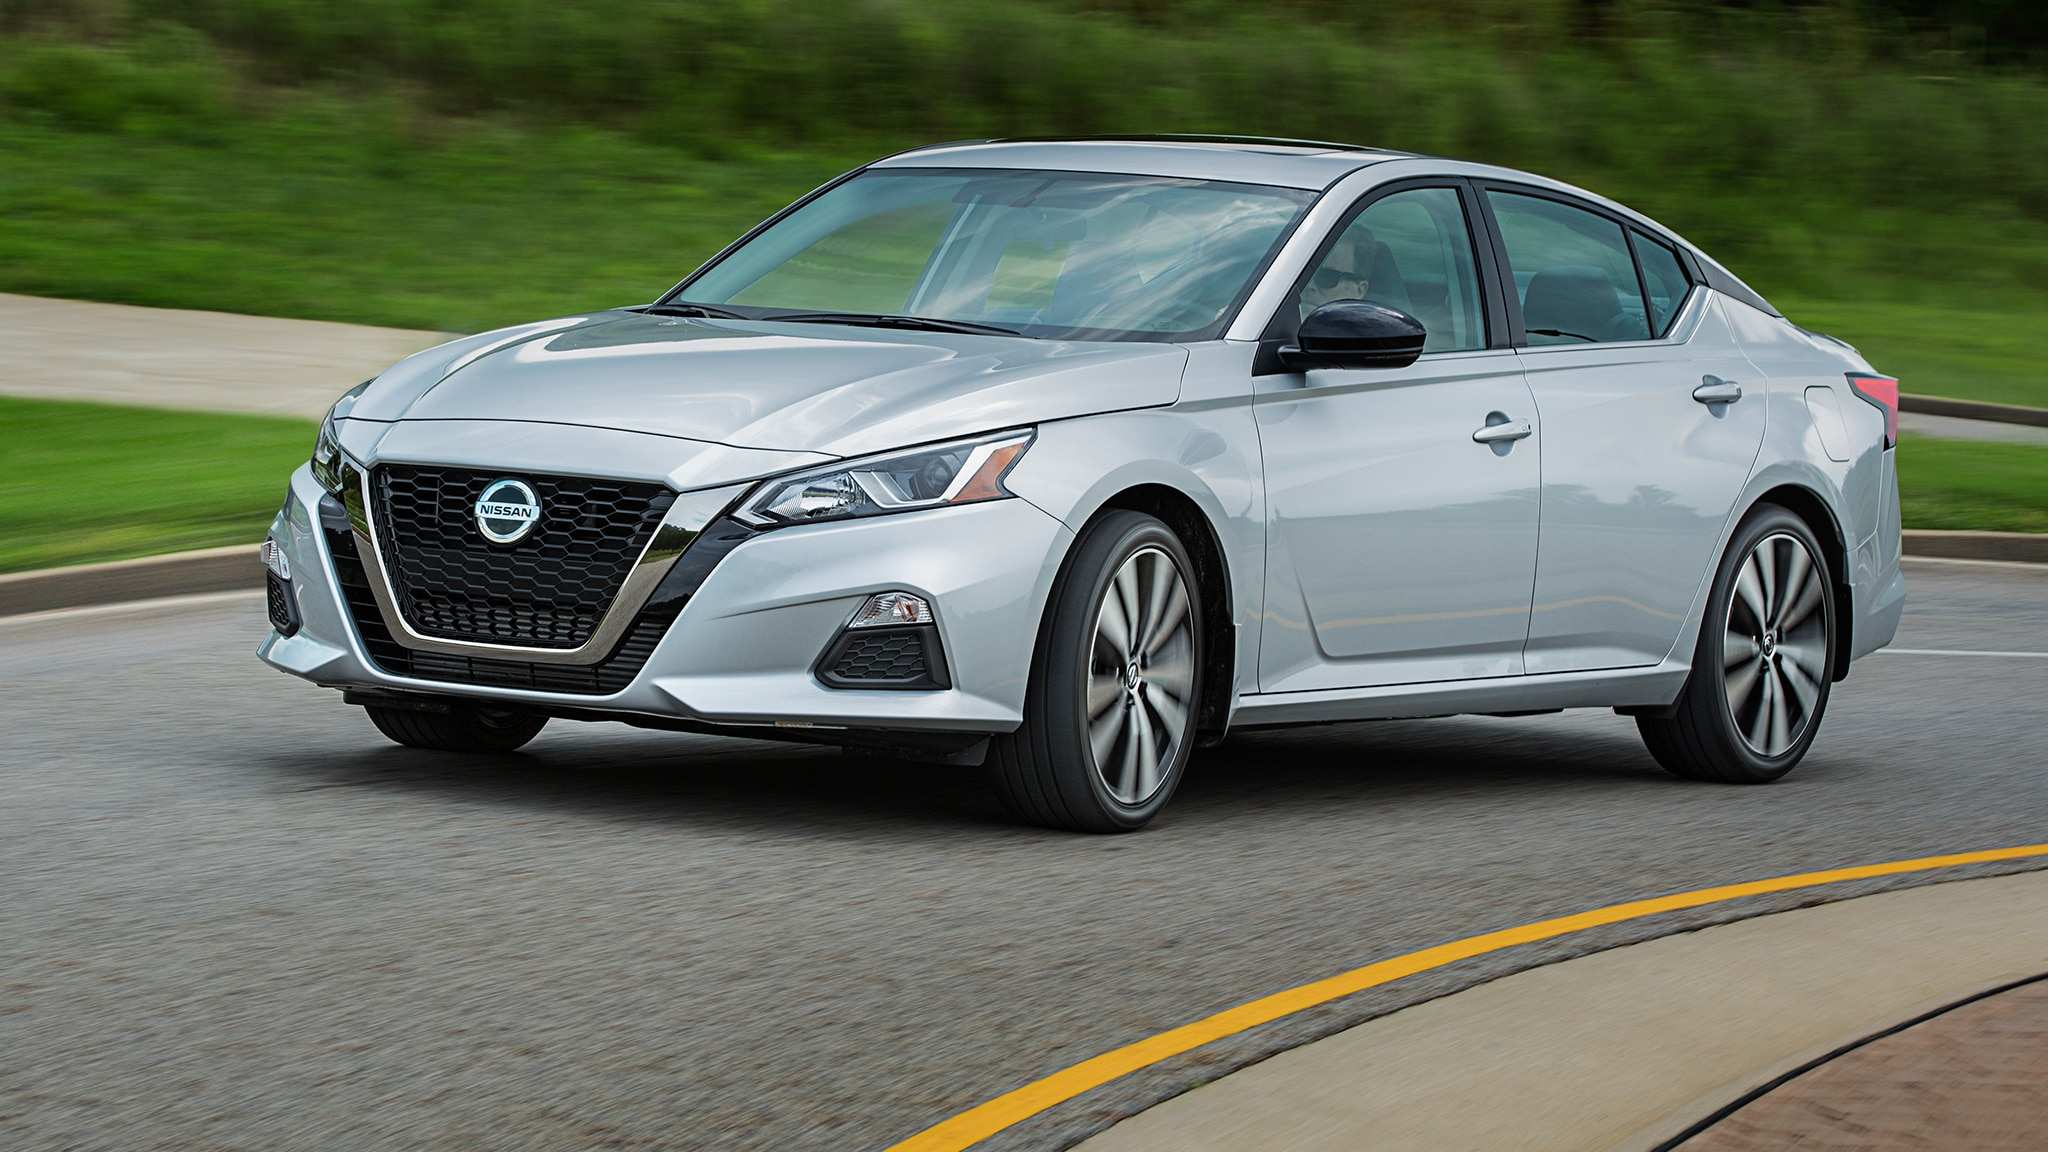 79 The Nissan Altima 2019 Horsepower Release Date